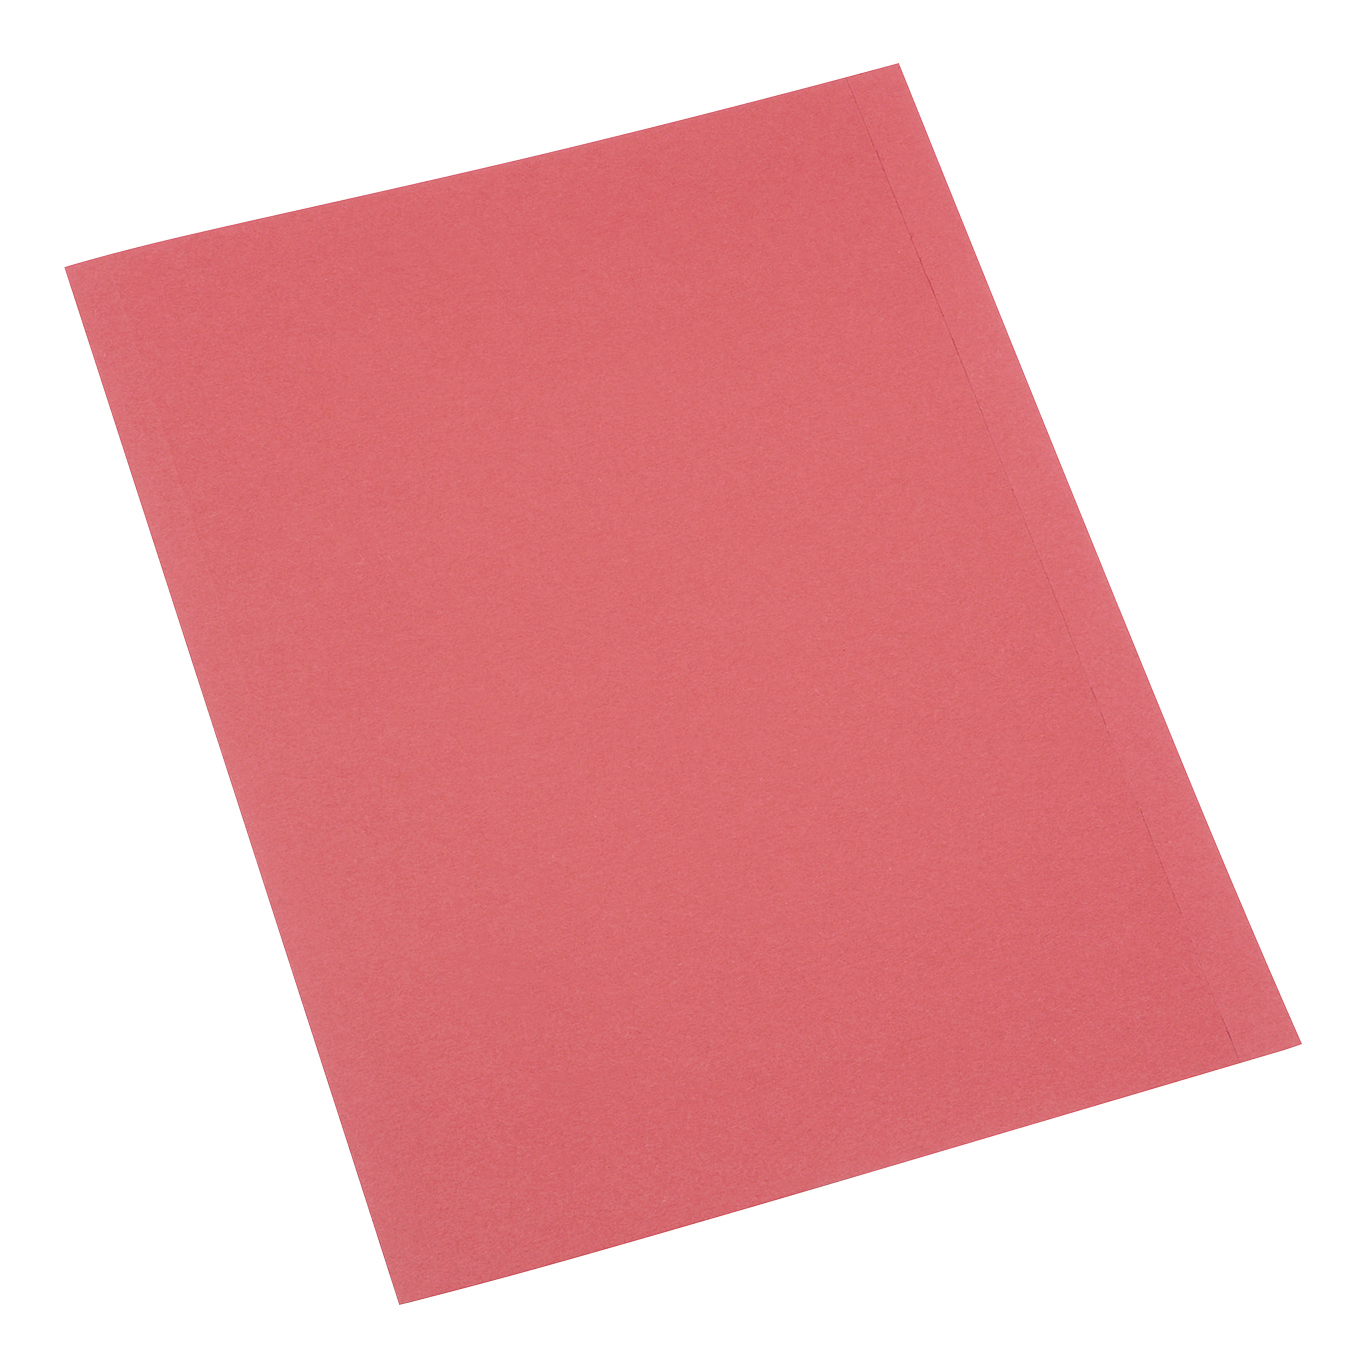 Square Cut Folders 5 Star Office Square Cut Folder Recycled 250gsm A4 Red Pack 100